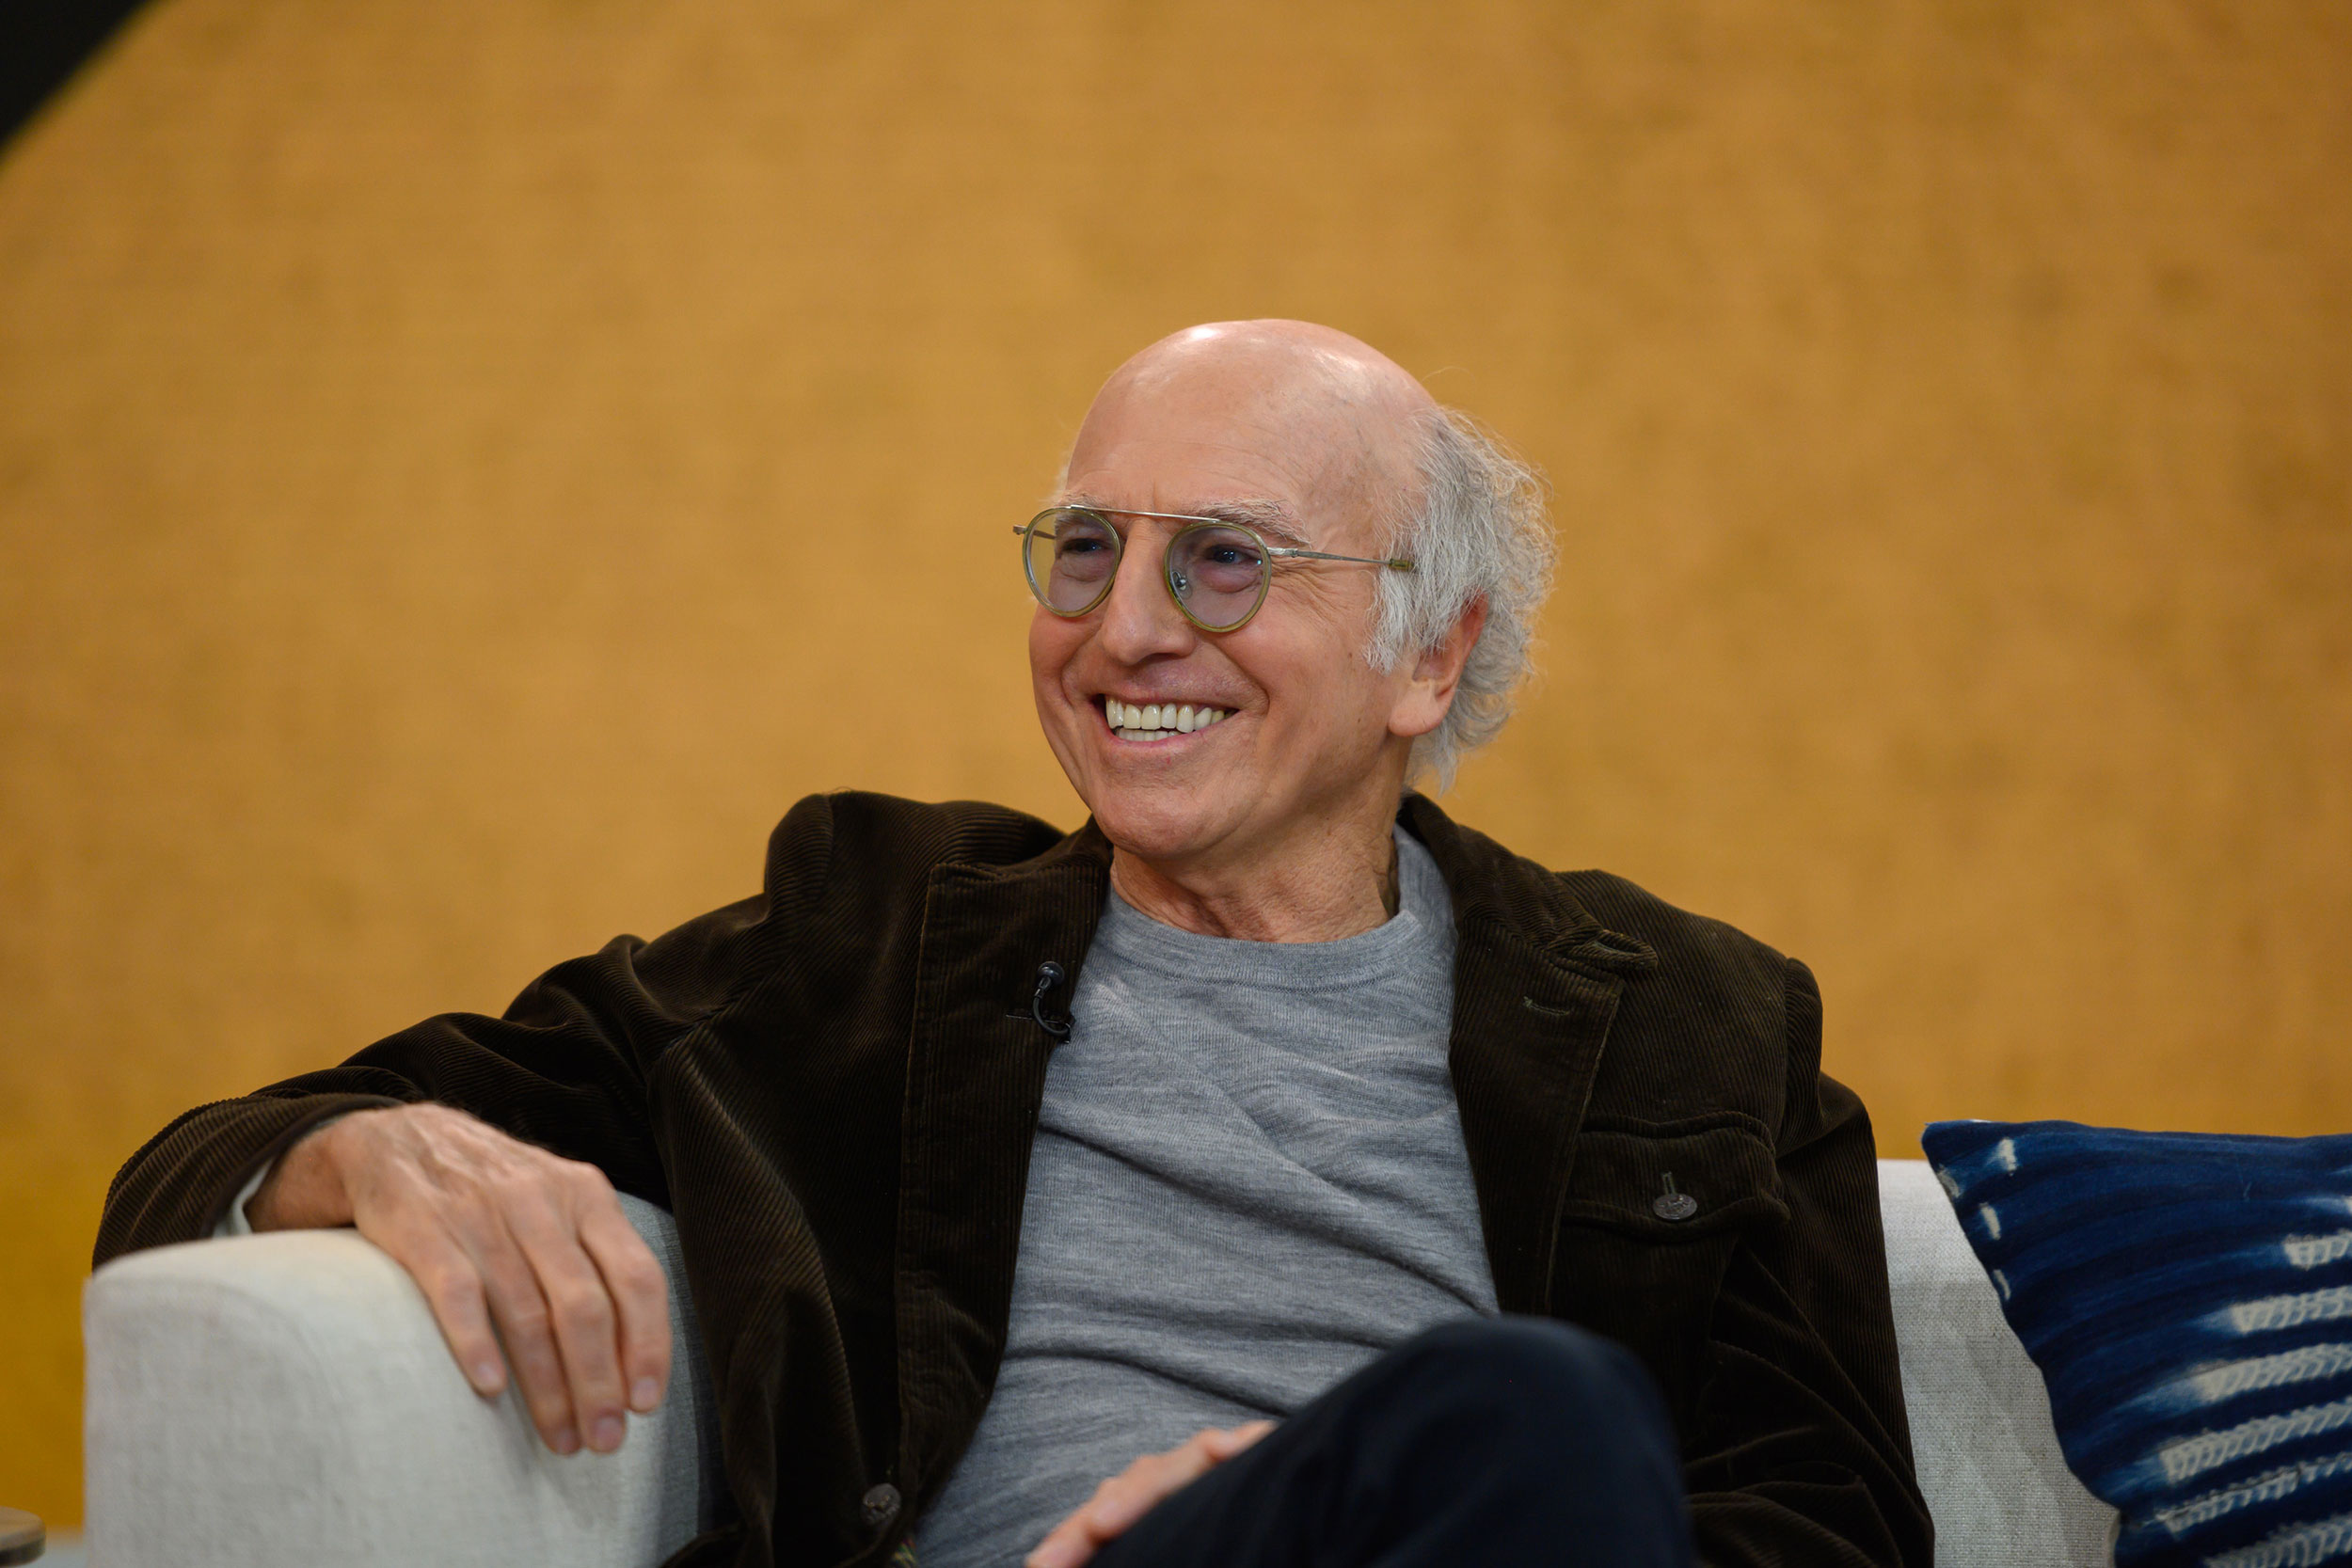 Larry David started a GoFundMe for golf caddies affected by coronavirus